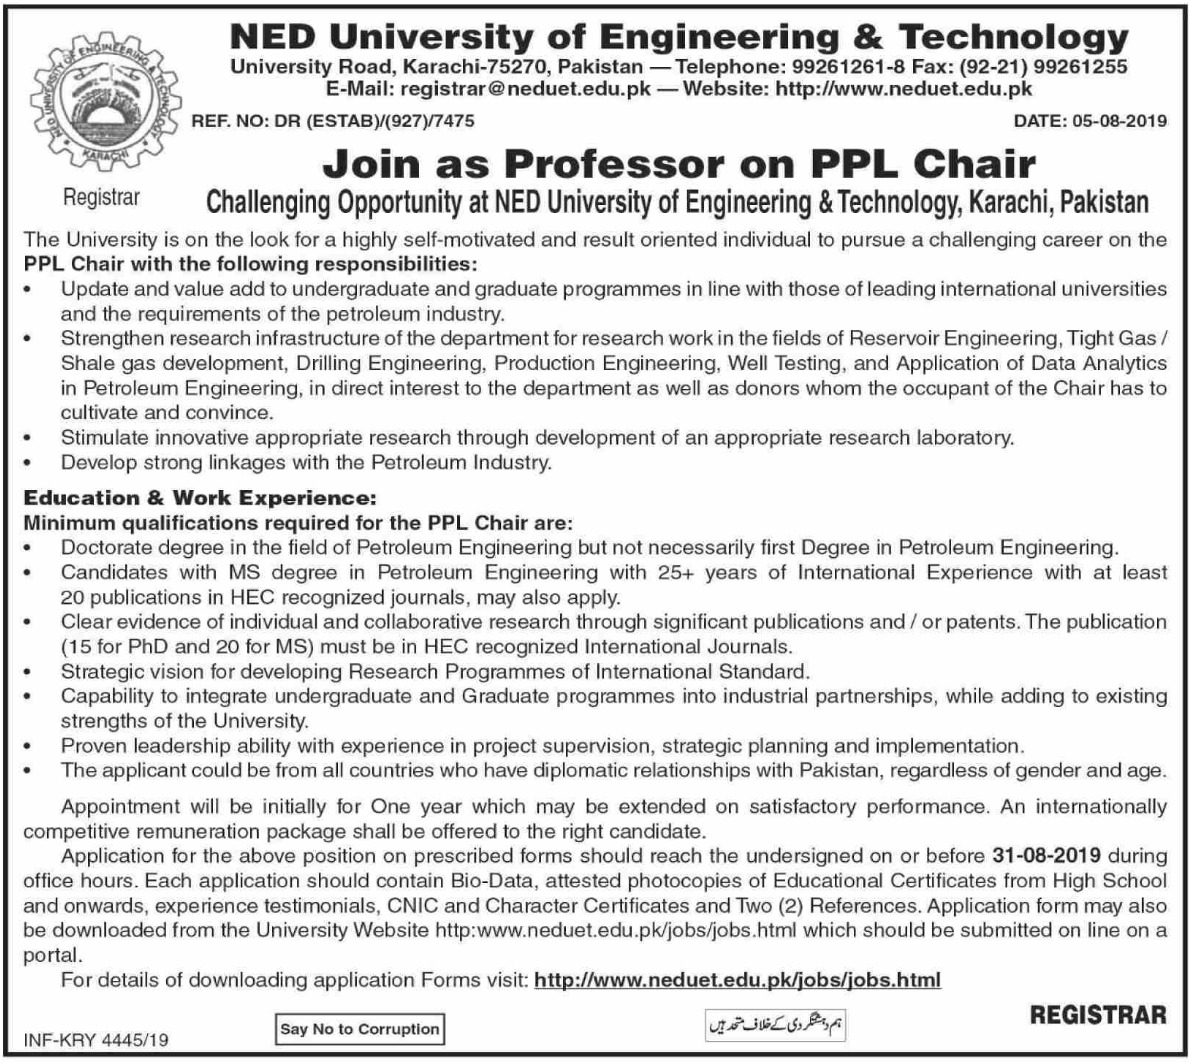 NED University of Engineering & Technology Karachi Jobs 2019